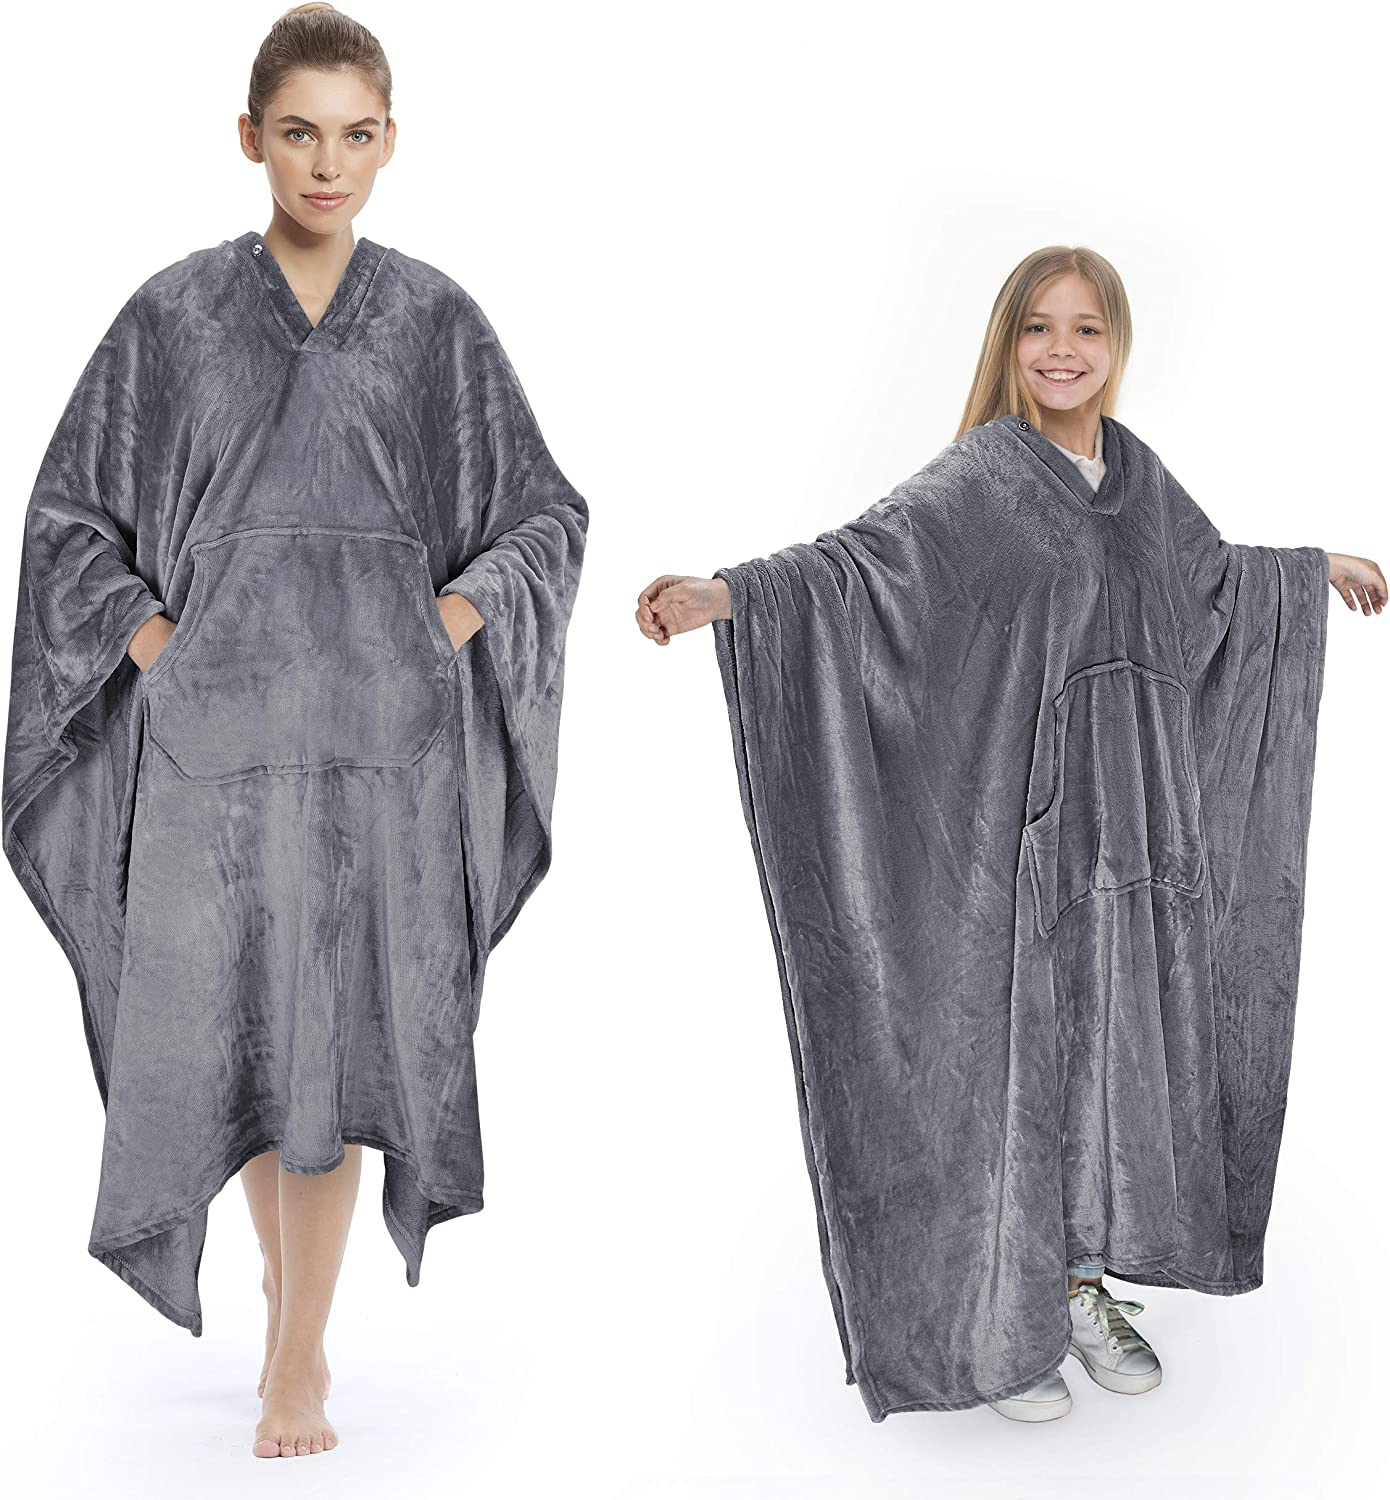 Tirrinia Poncho Blanket Comfy Plush Fleece Wearable Blanket for Adult